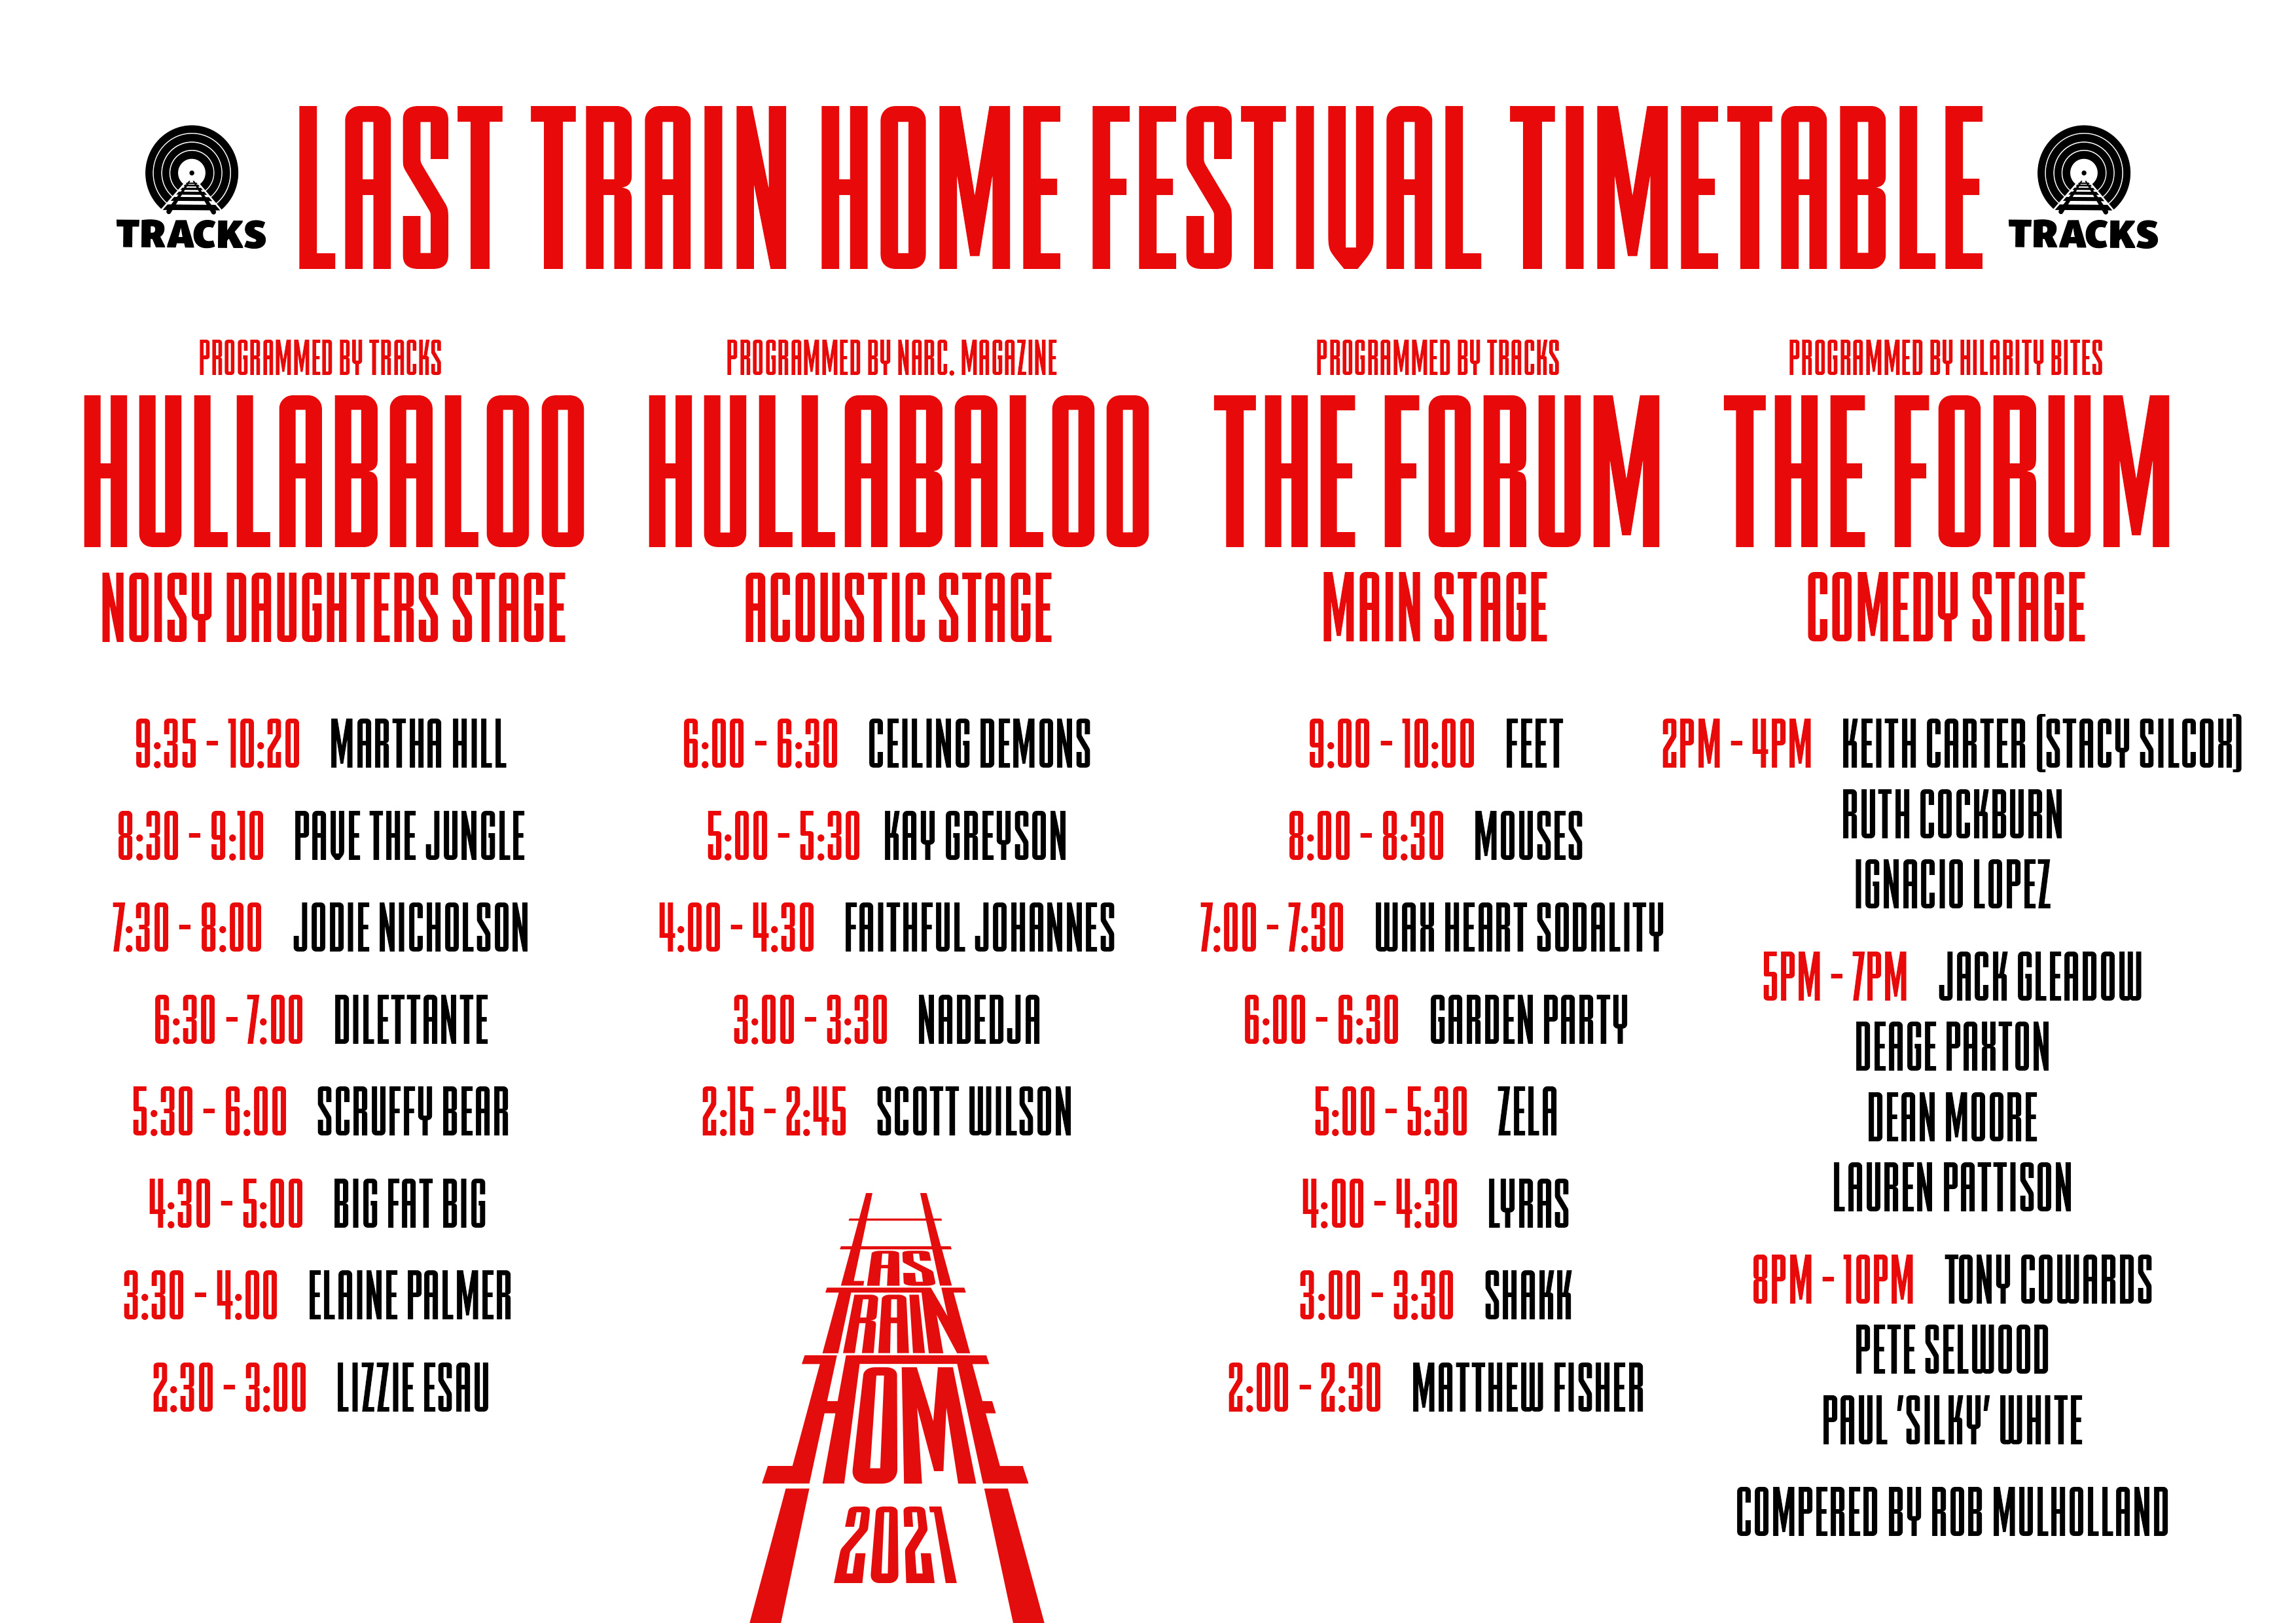 An inky red and black explosion of artist names who're jumping on board for this year's festival